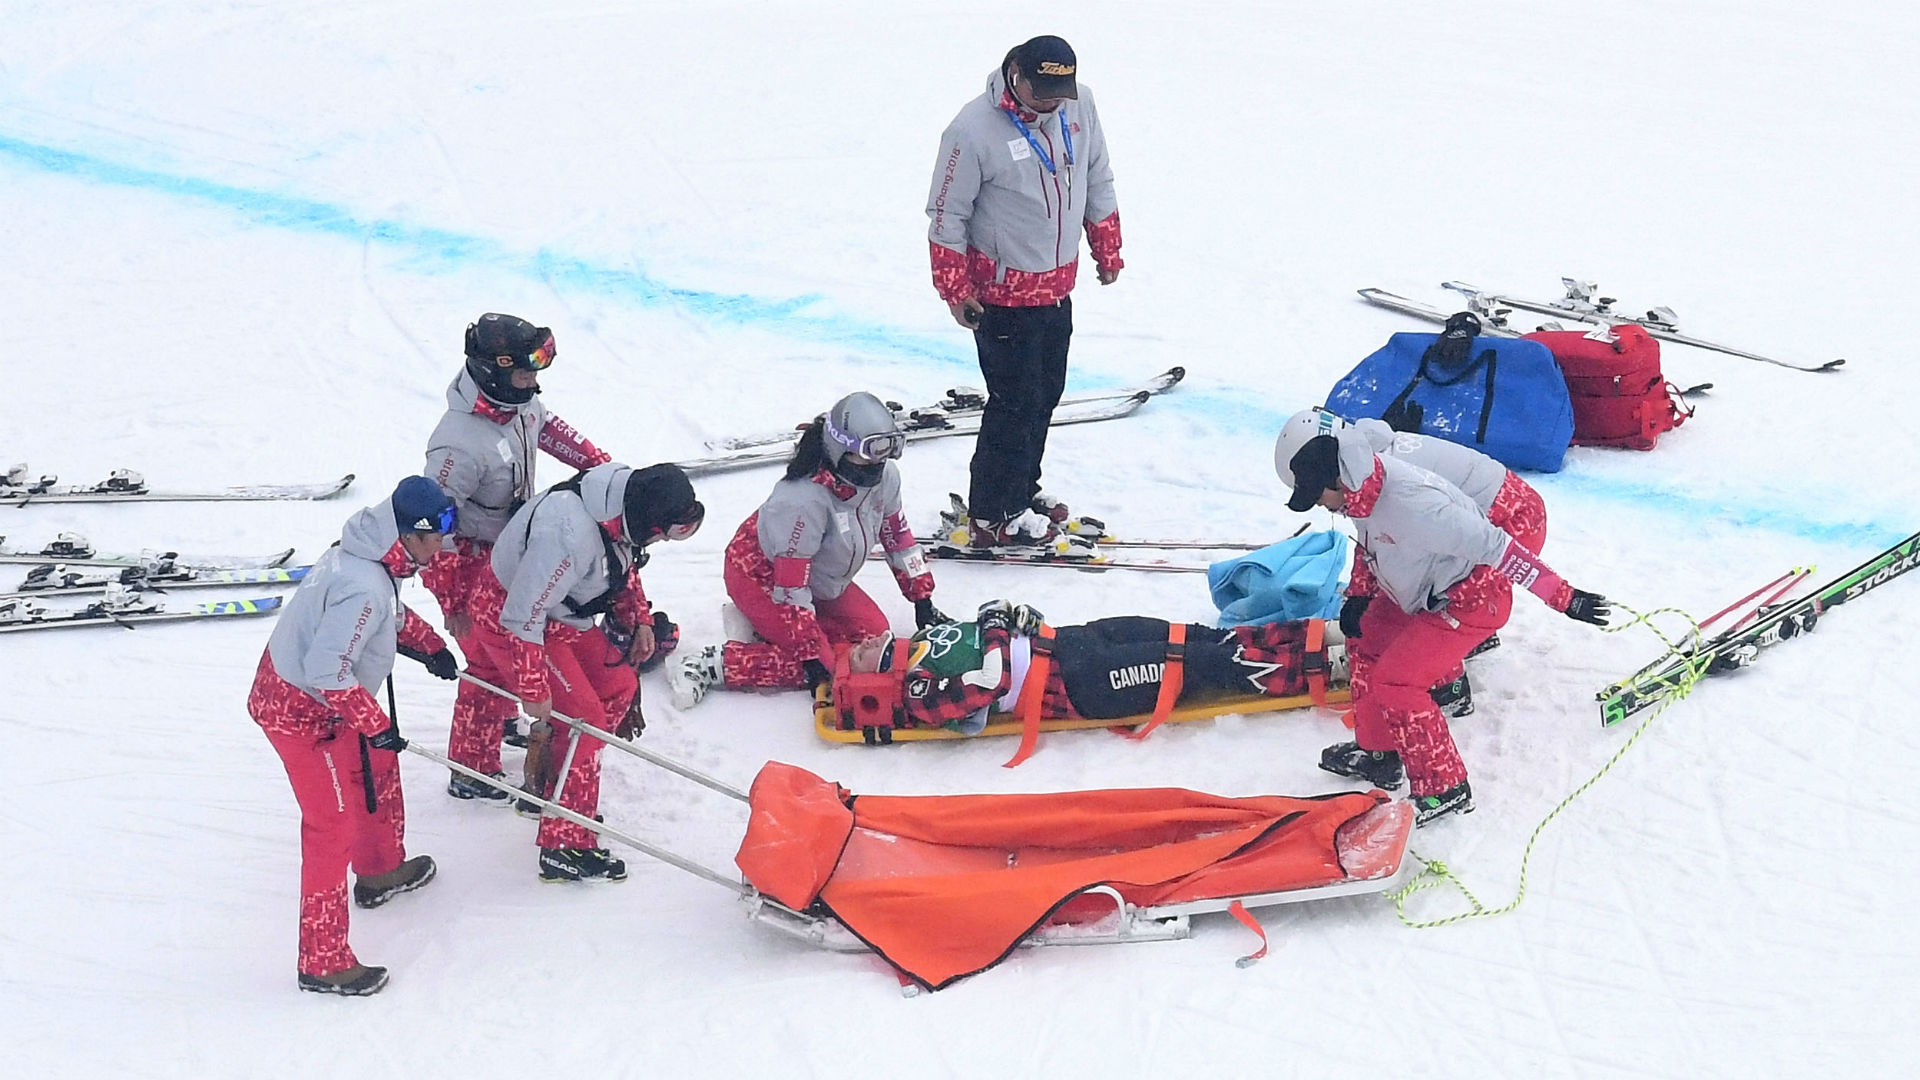 Winter Olympics 2018: Canada's India Sherret in stable condition after skiing crash